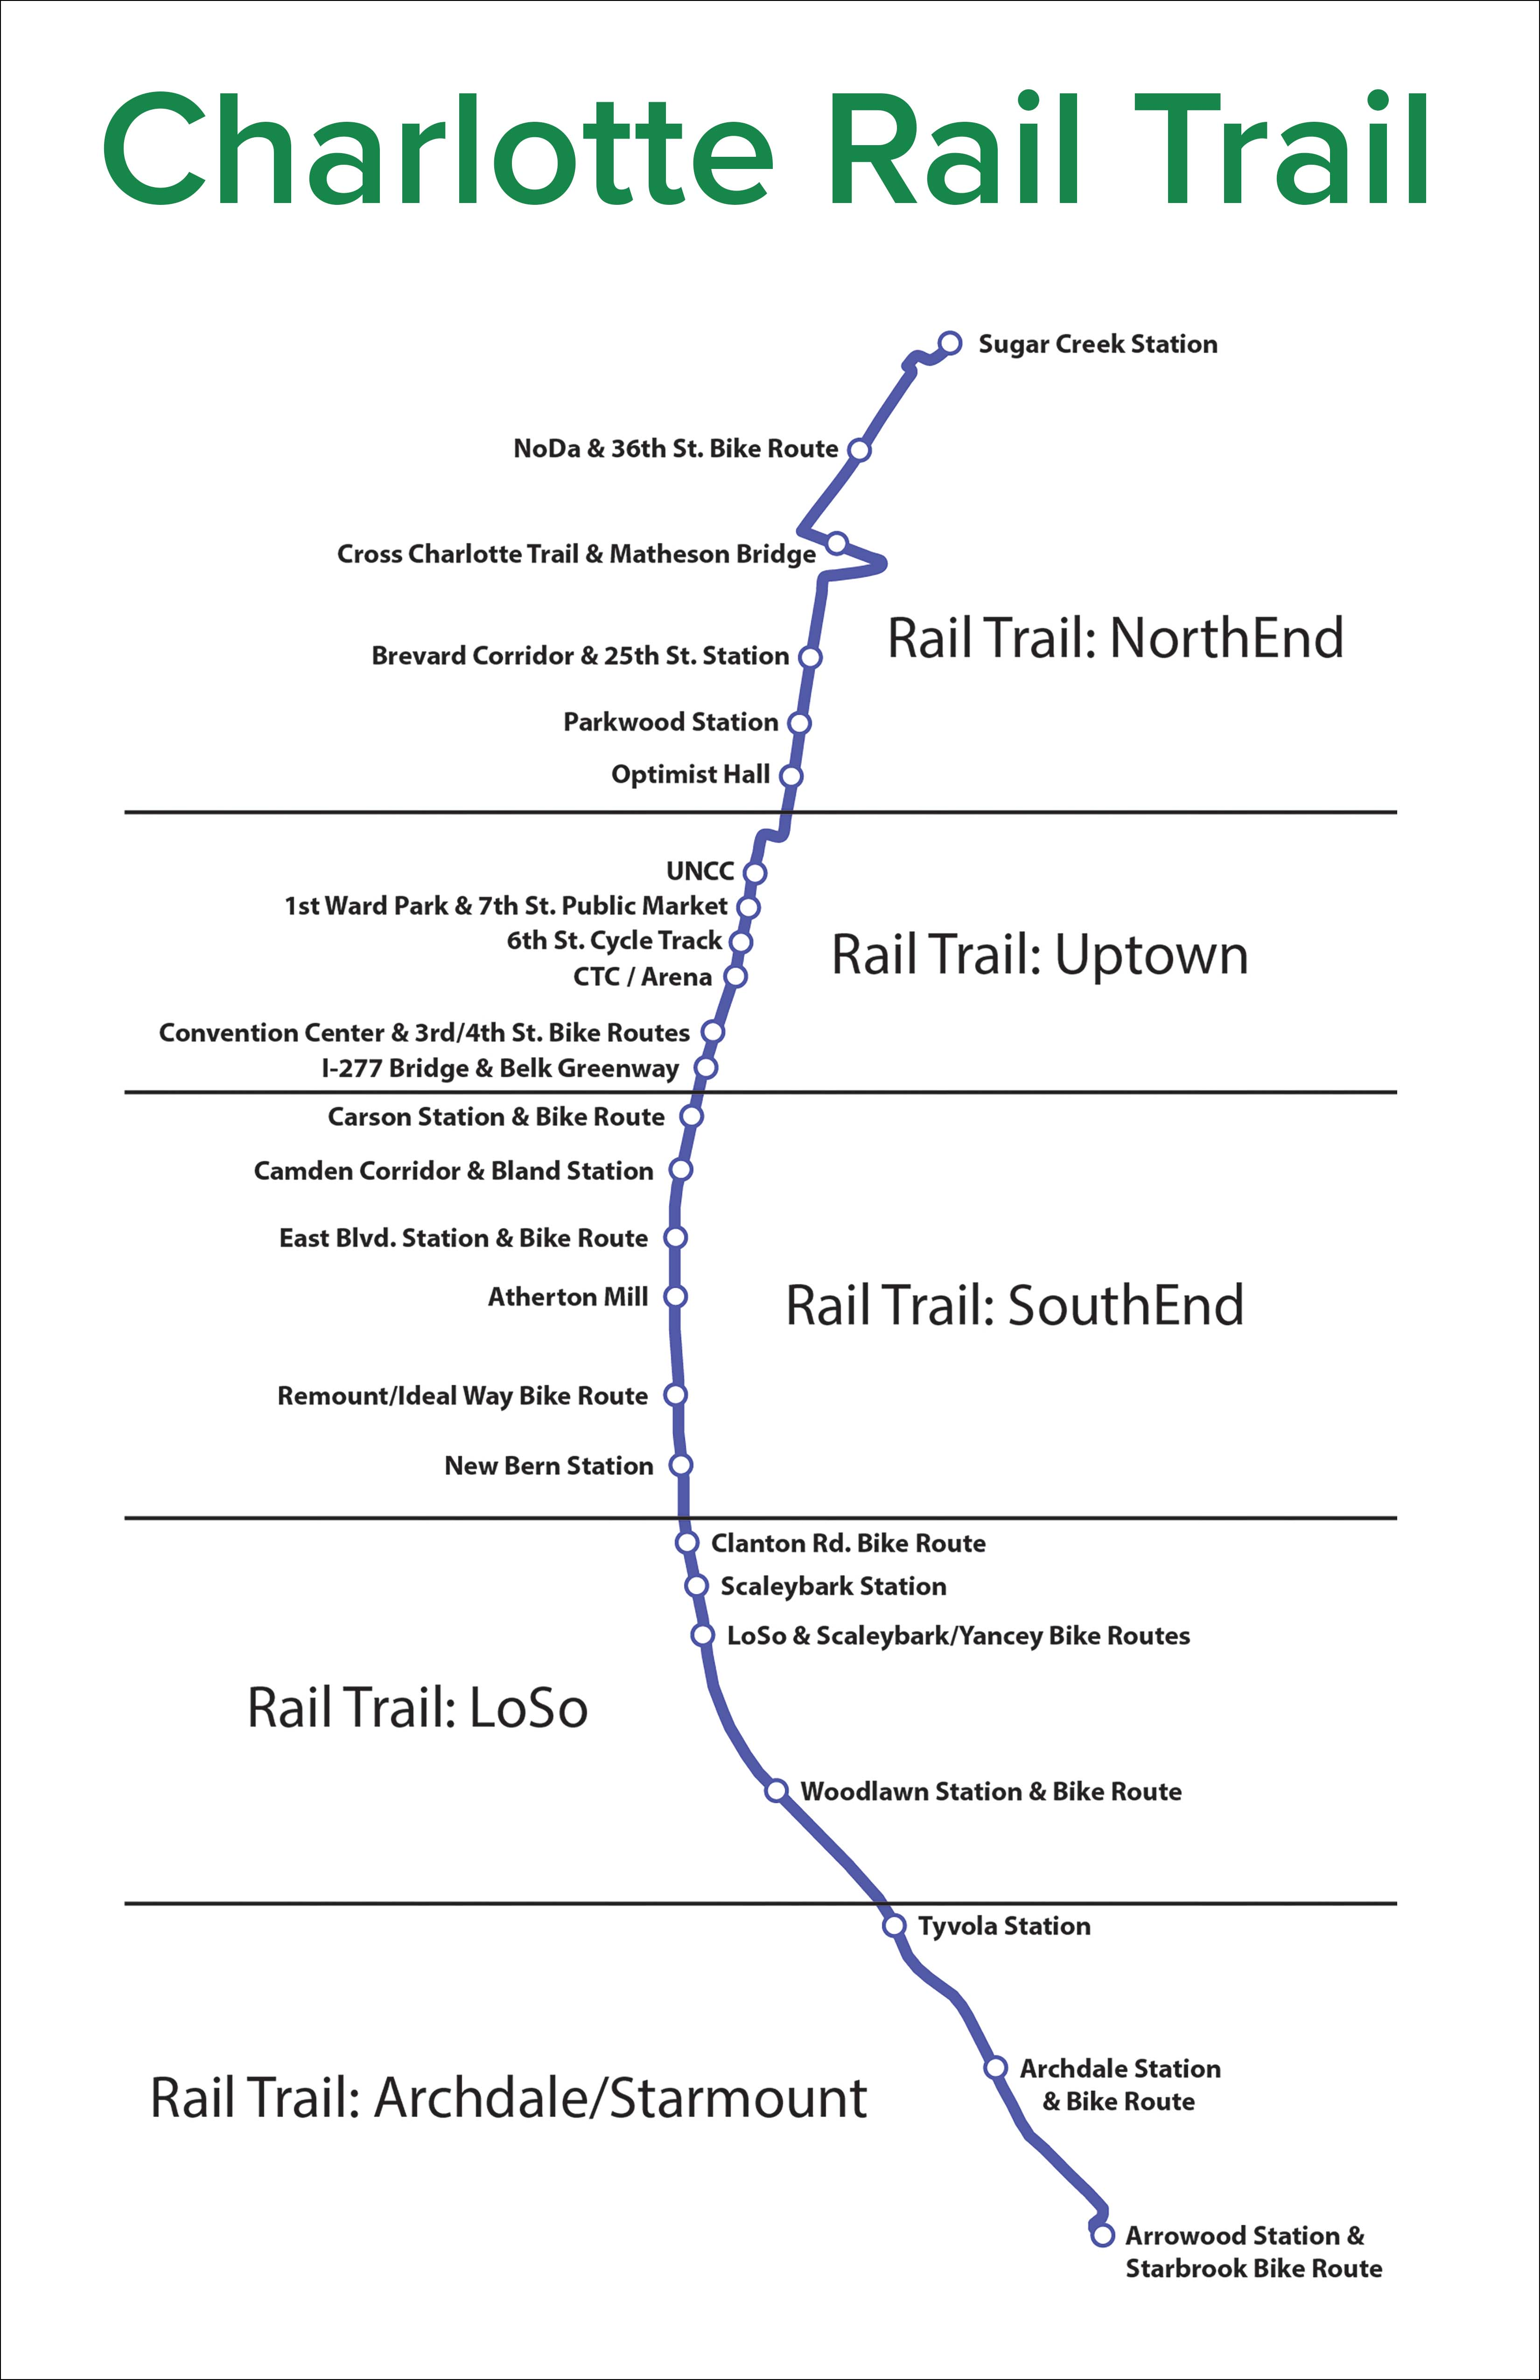 Charlotte Rail Trail Diagram